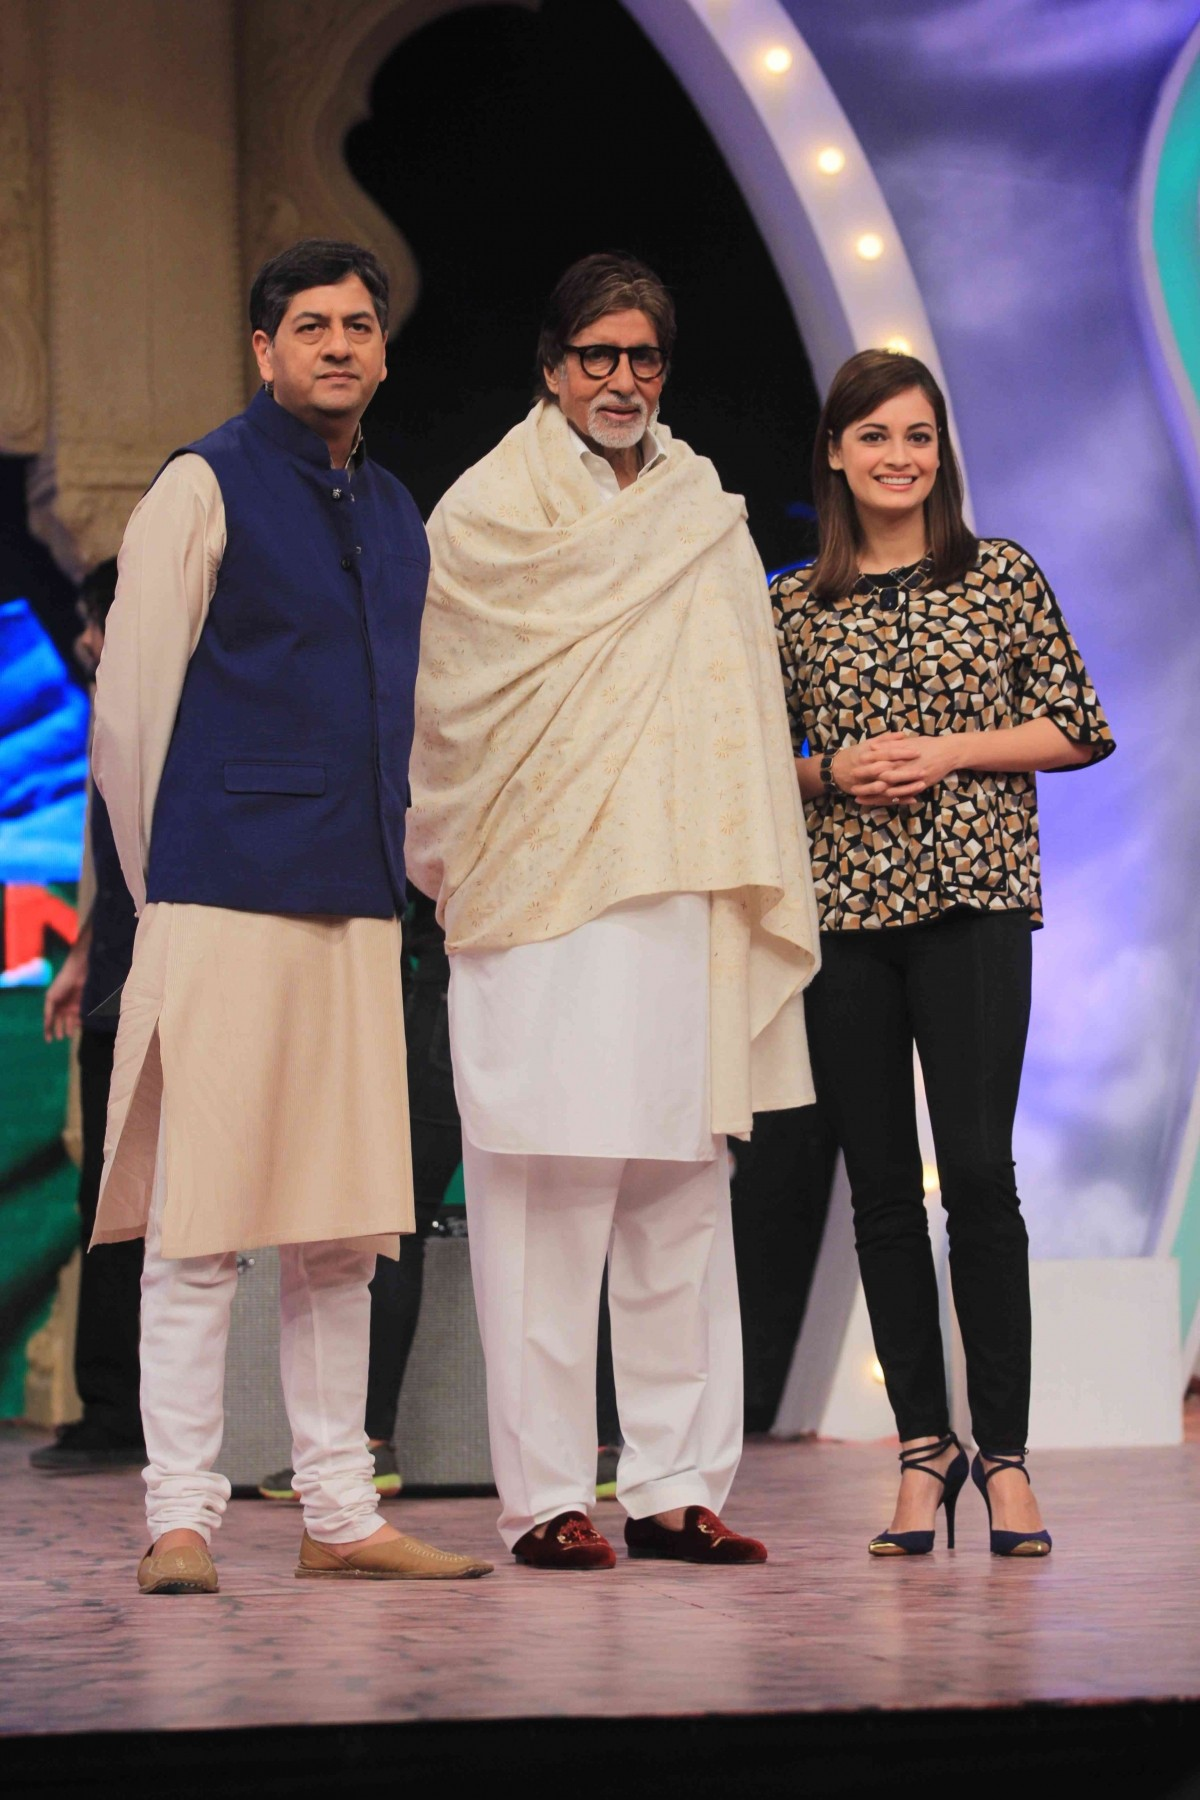 Vikram Chandra, Amitabh Bachchan and Dia Mirza attending Banega Swachh India Cleanathon event